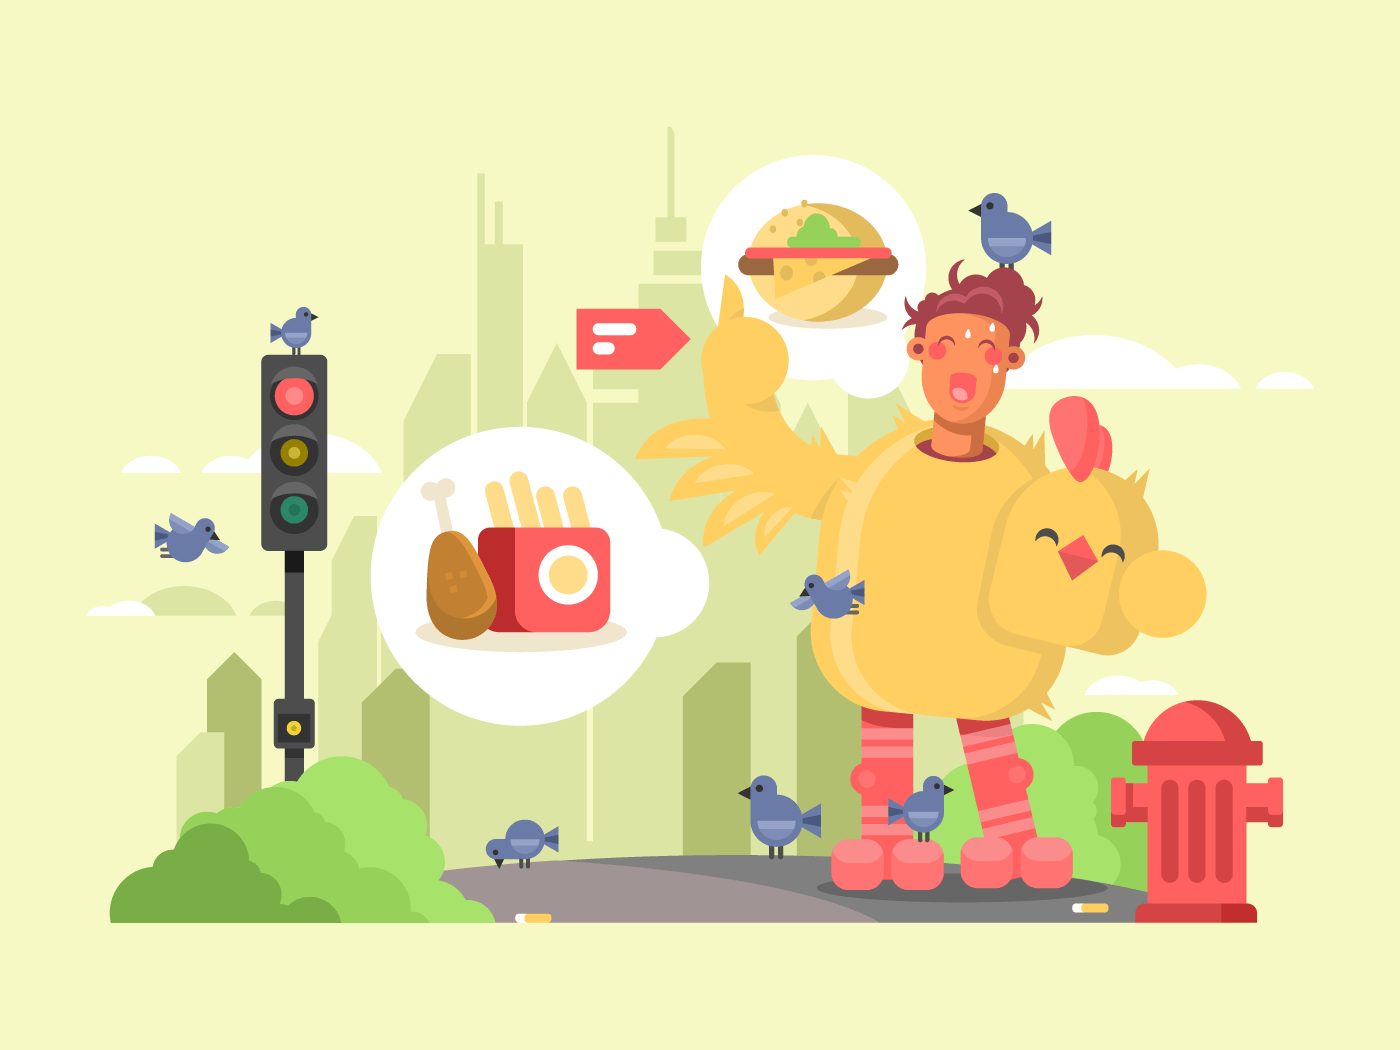 Man in chicken suit flat vector illustration